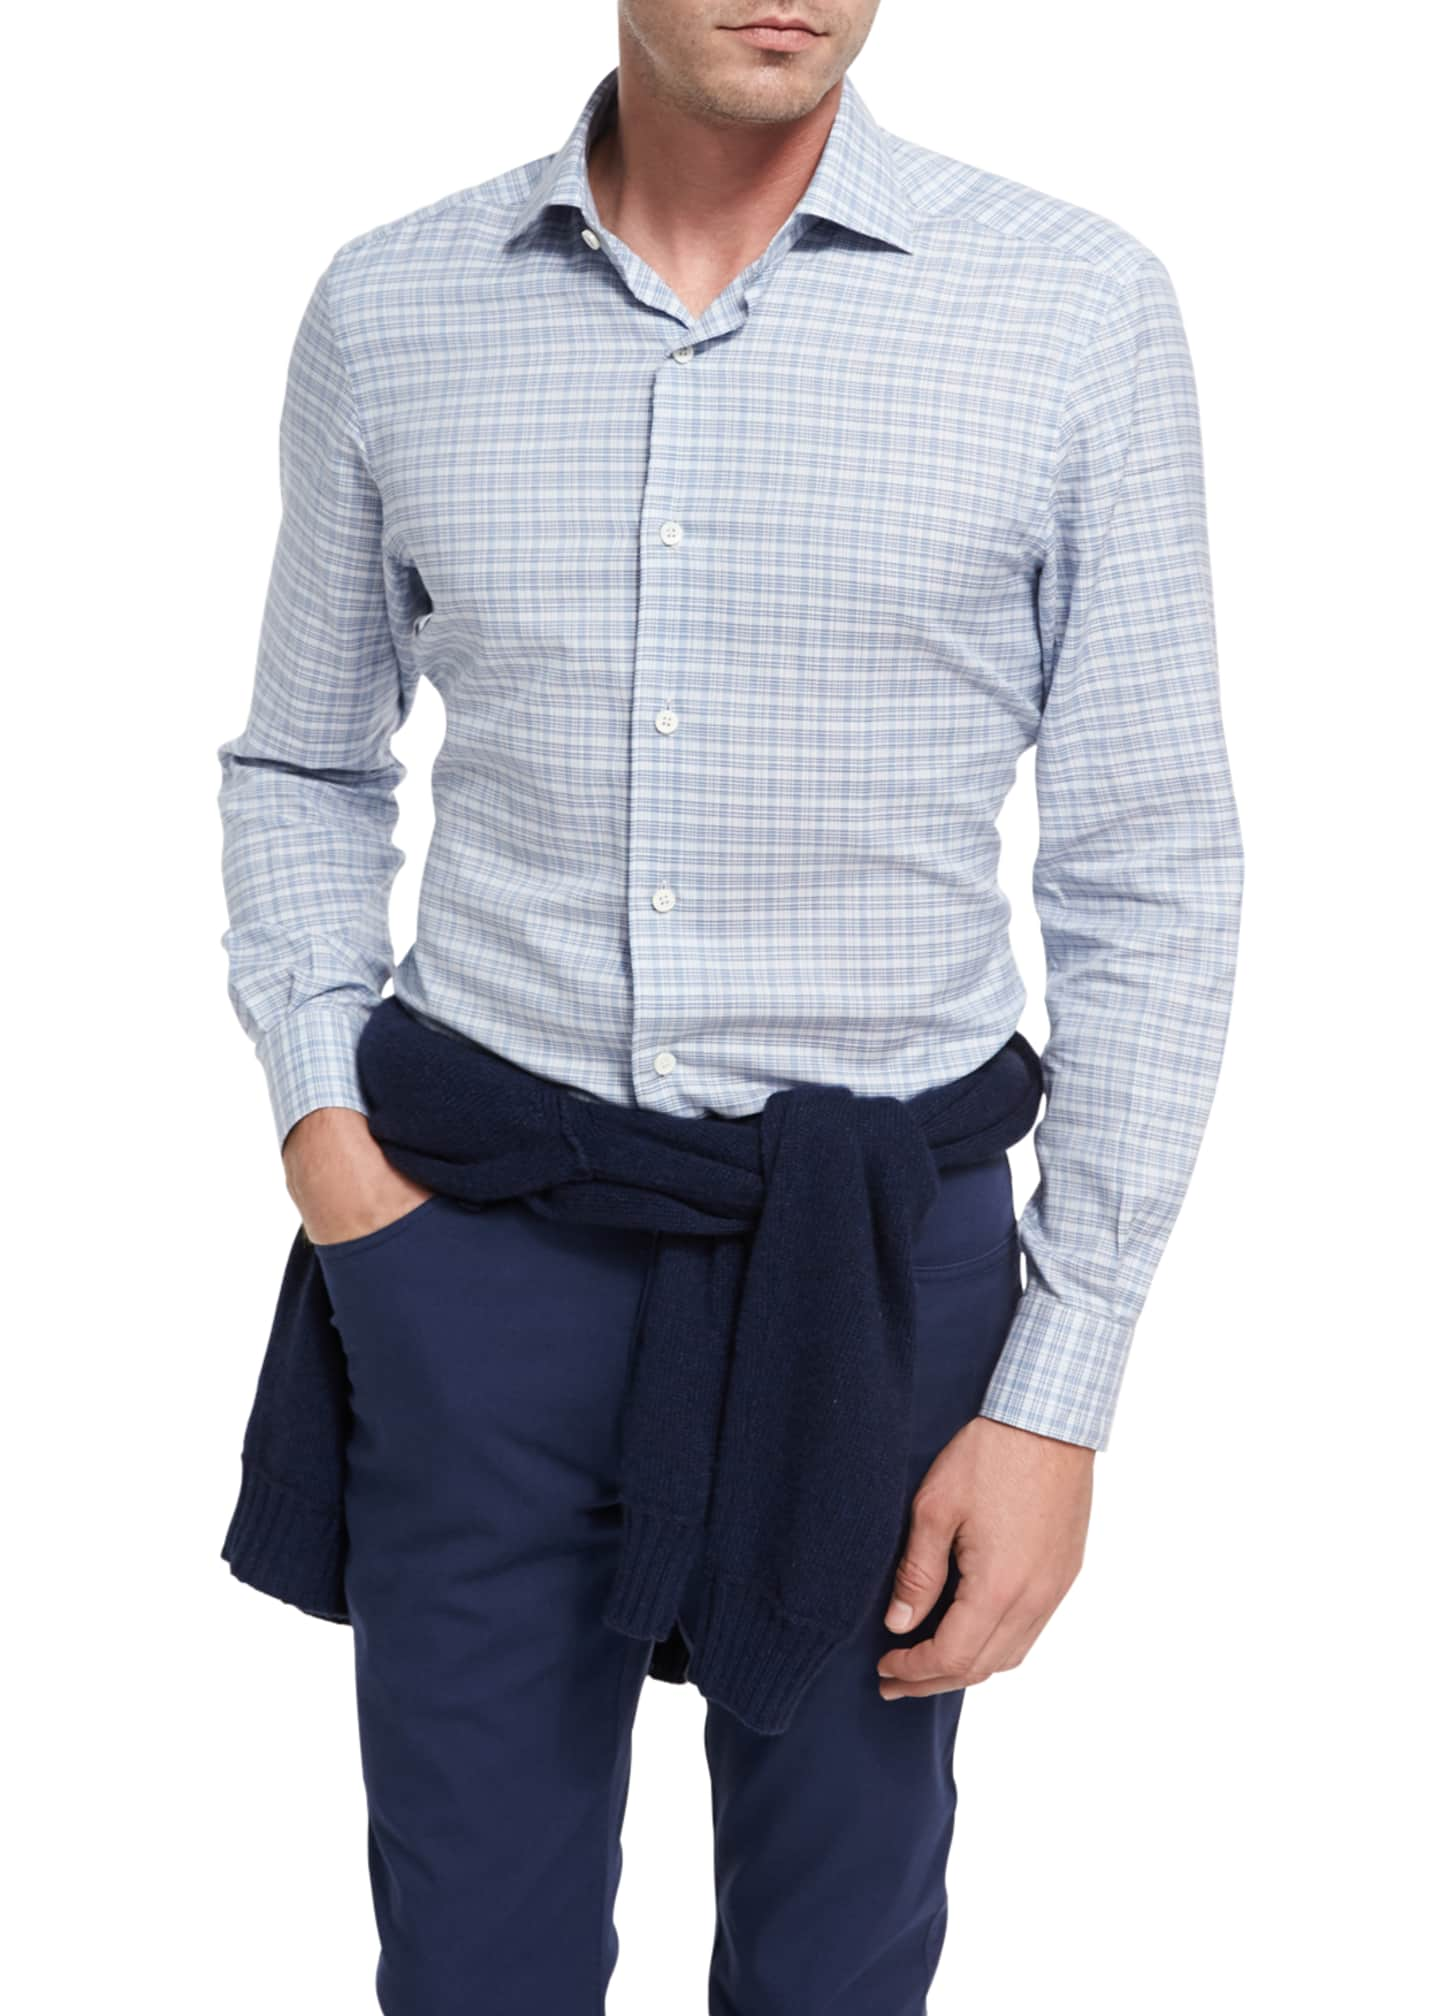 Ermenegildo Zegna Plaid Cotton Shirt, Light Blue/White